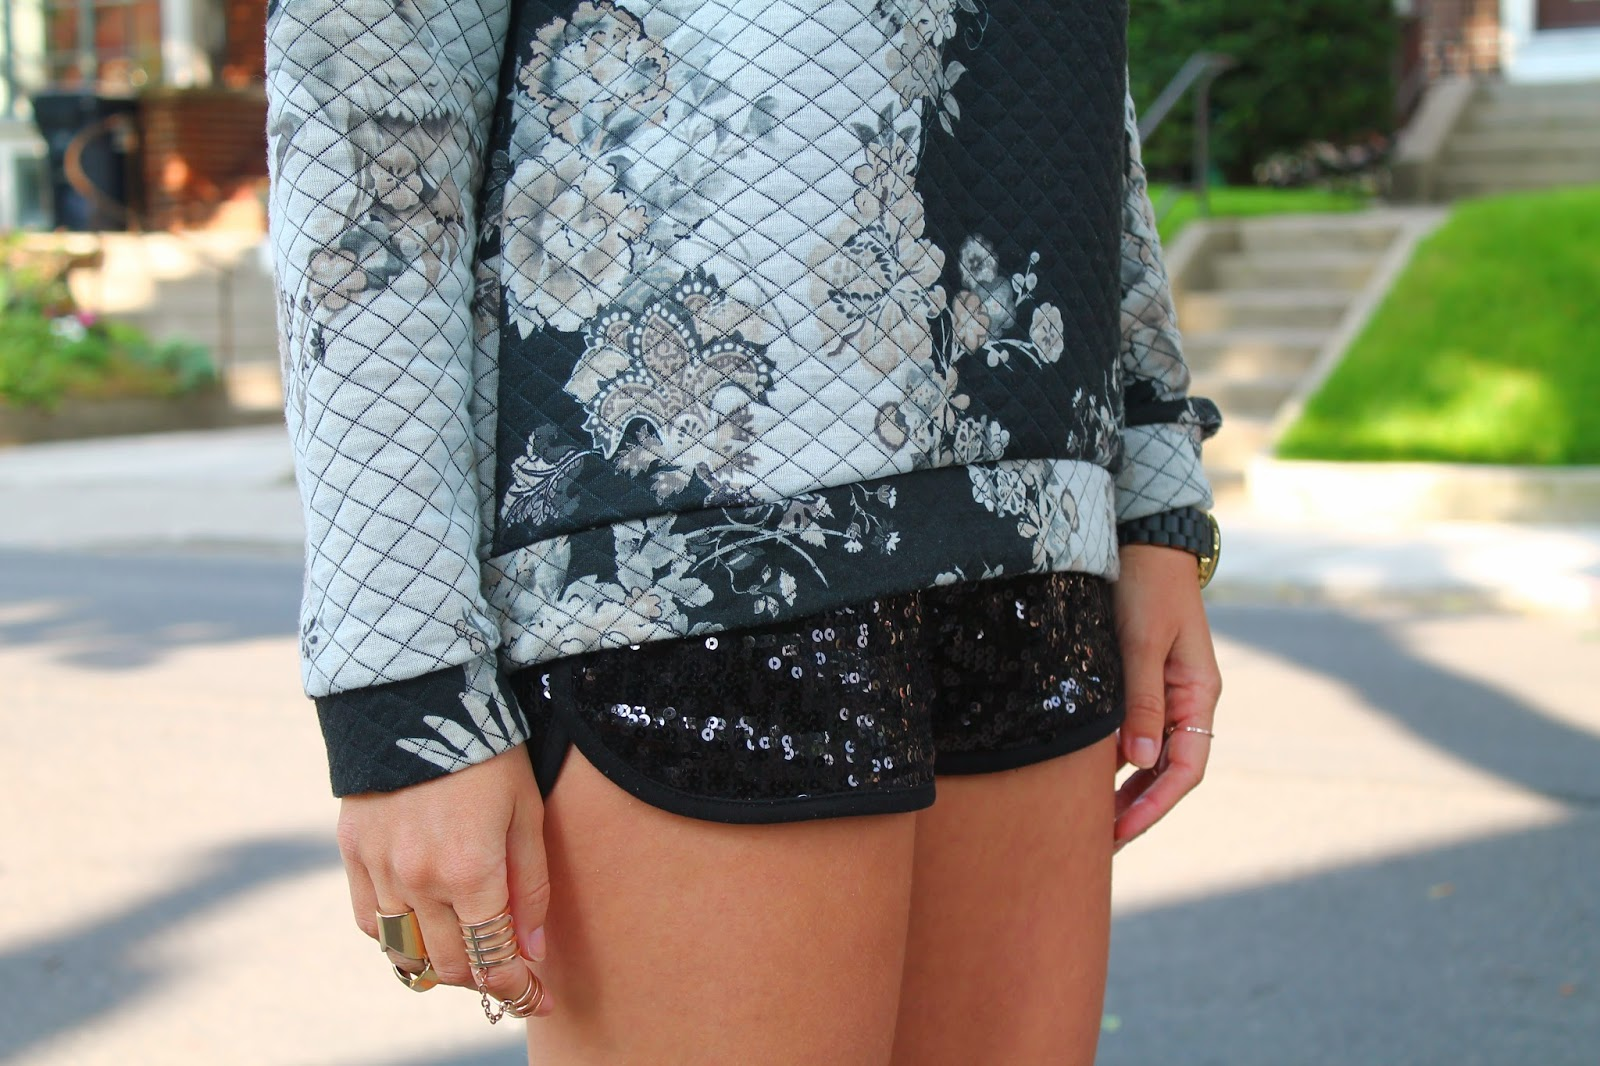 Sequin shorts, quilted sweatshirt, how to mix textures, blogerke, canadian fashion blogger, texture mixing for summer, floral print sweatshirt, toronto street style, Prada sunglasses